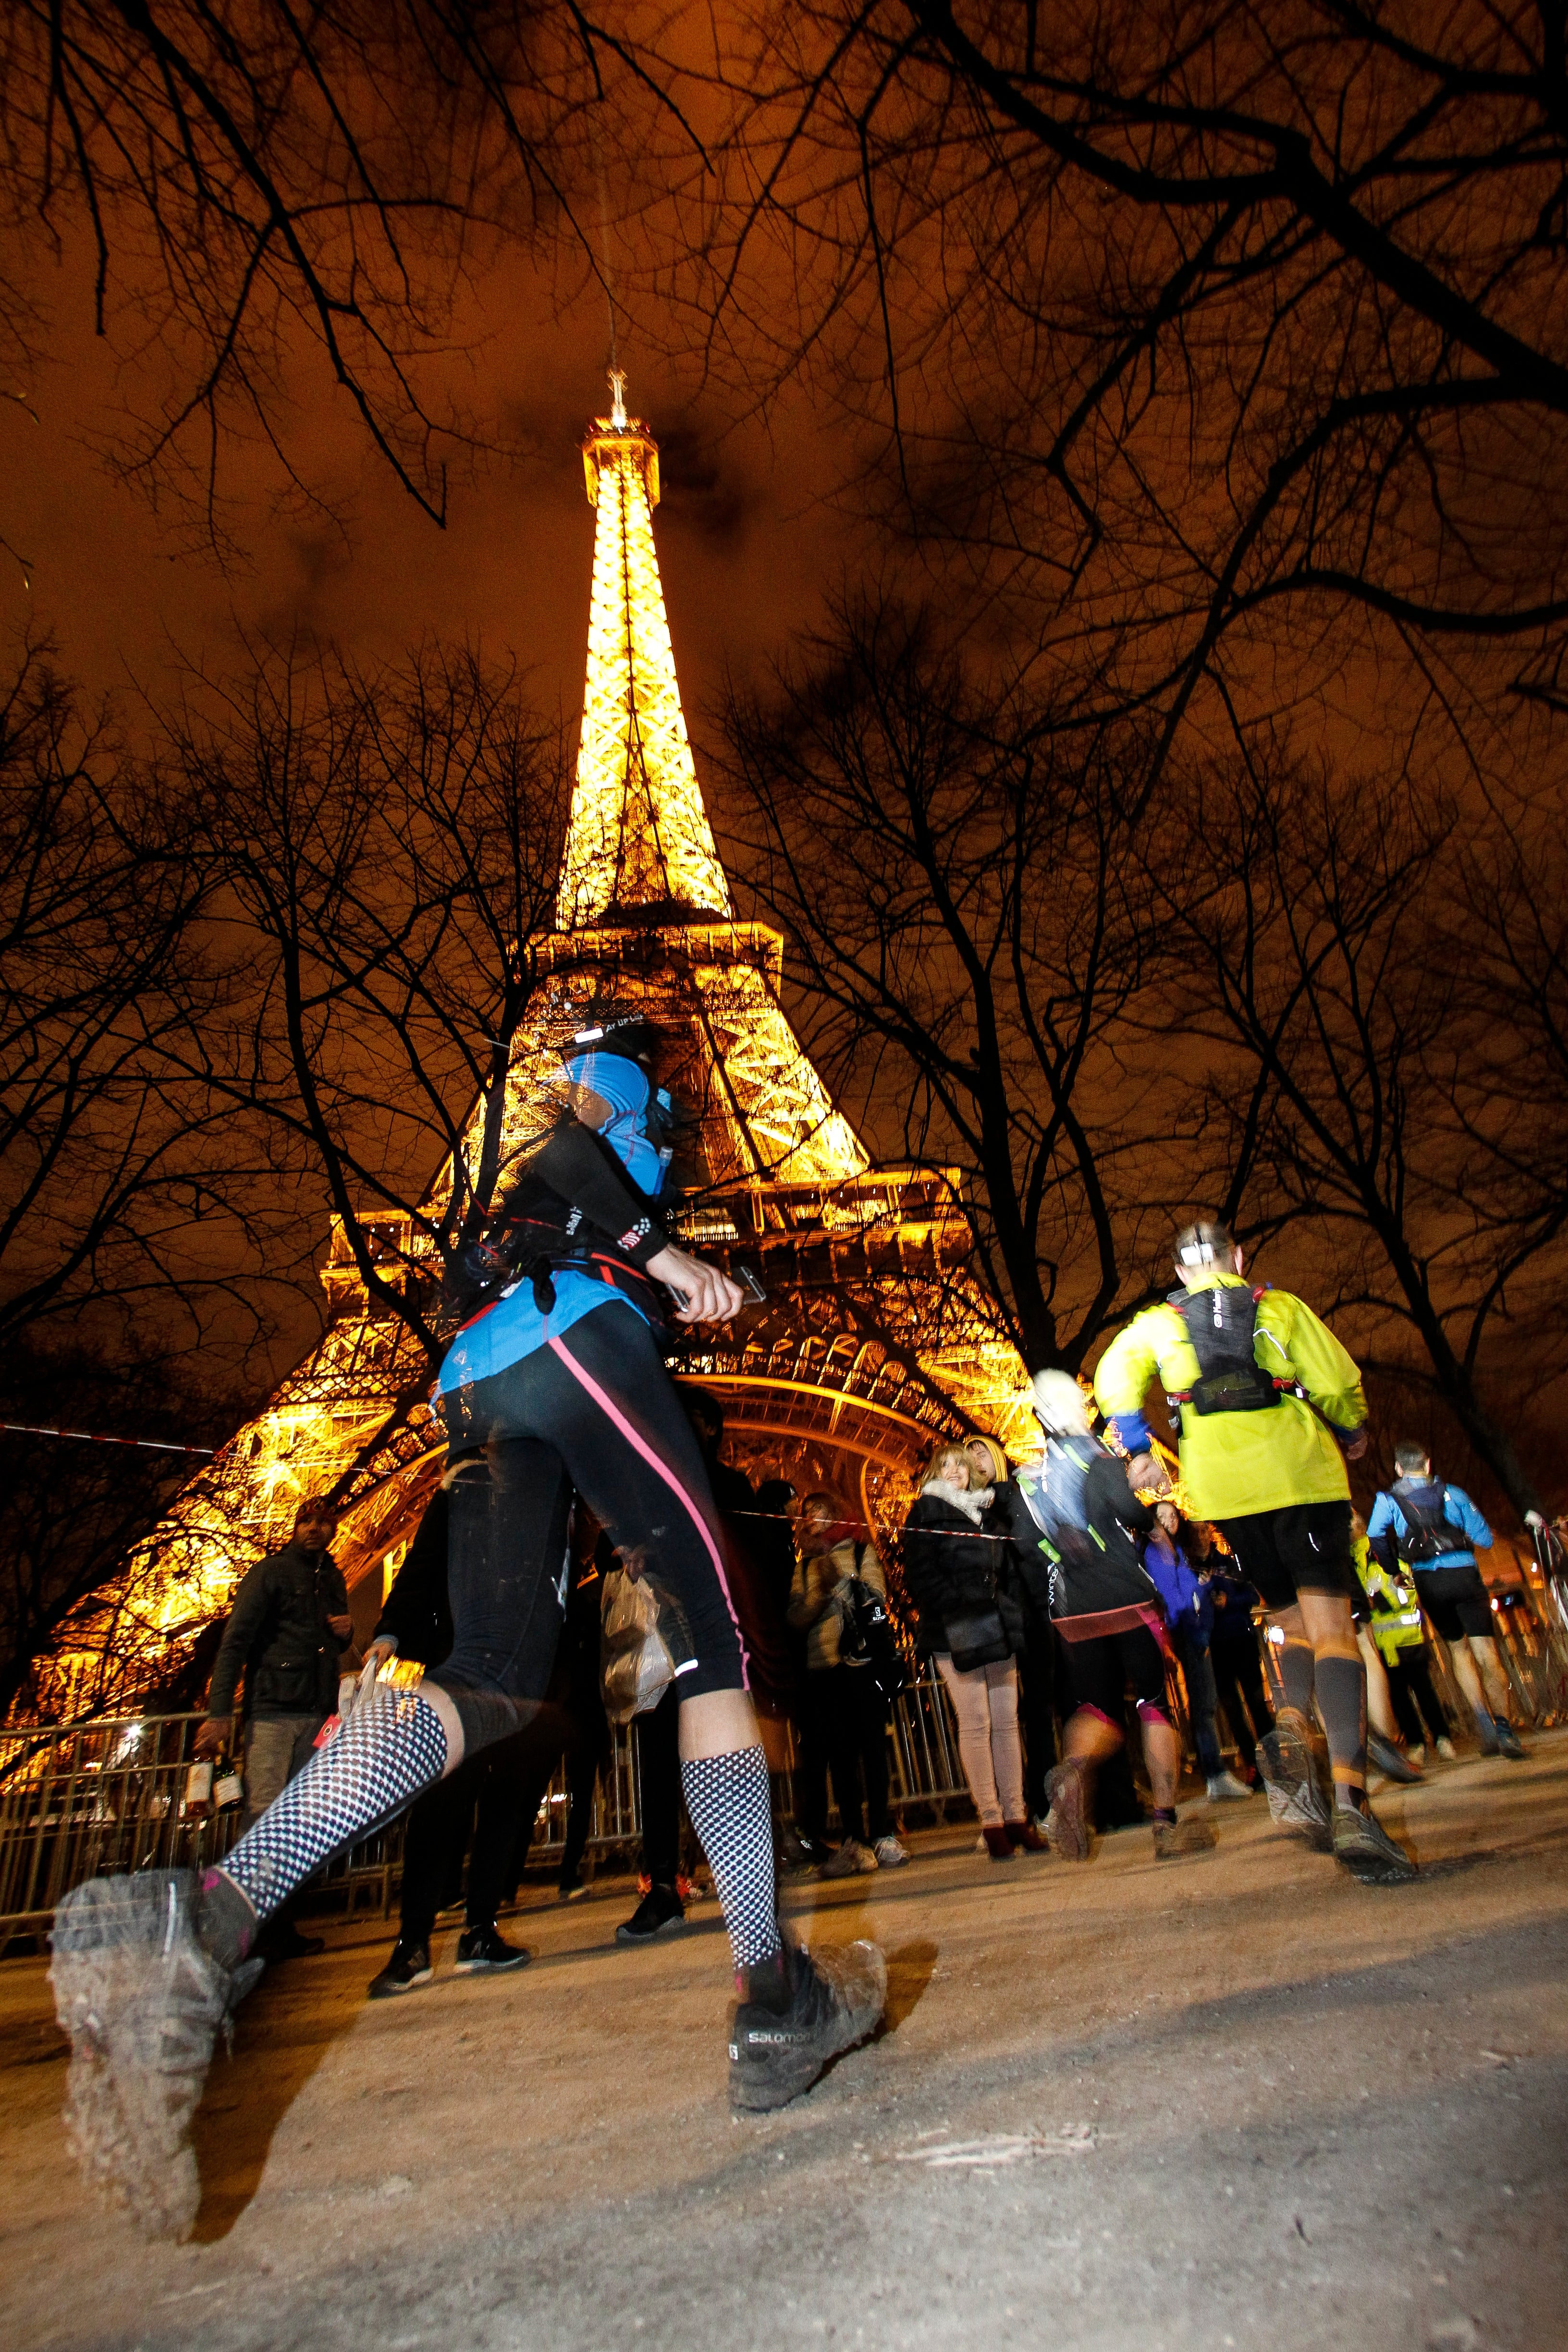 EcoTrail Paris 2019 approaching the Eiffel Tower finish